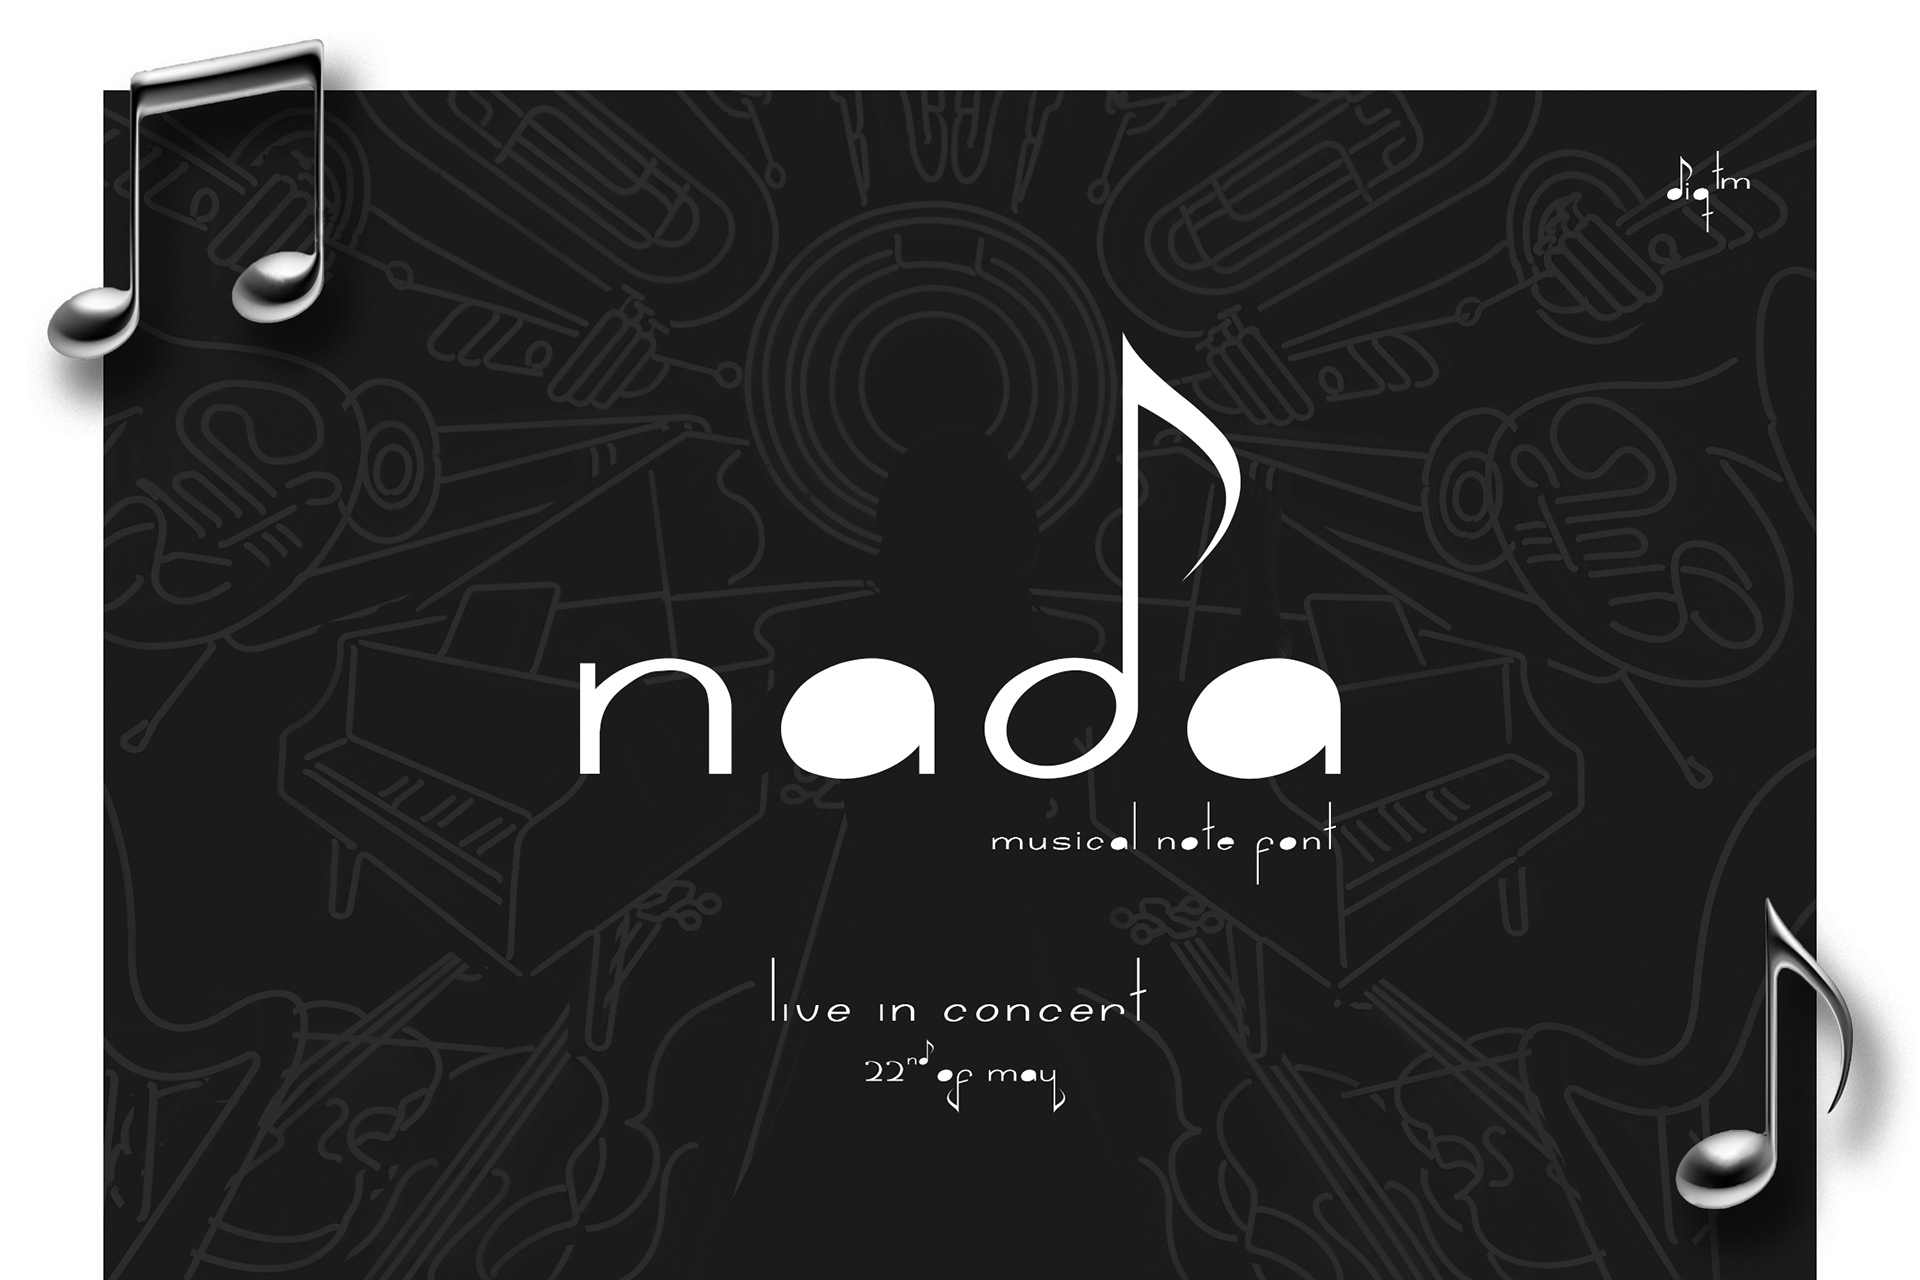 Nada Free Display Font - decorative-display